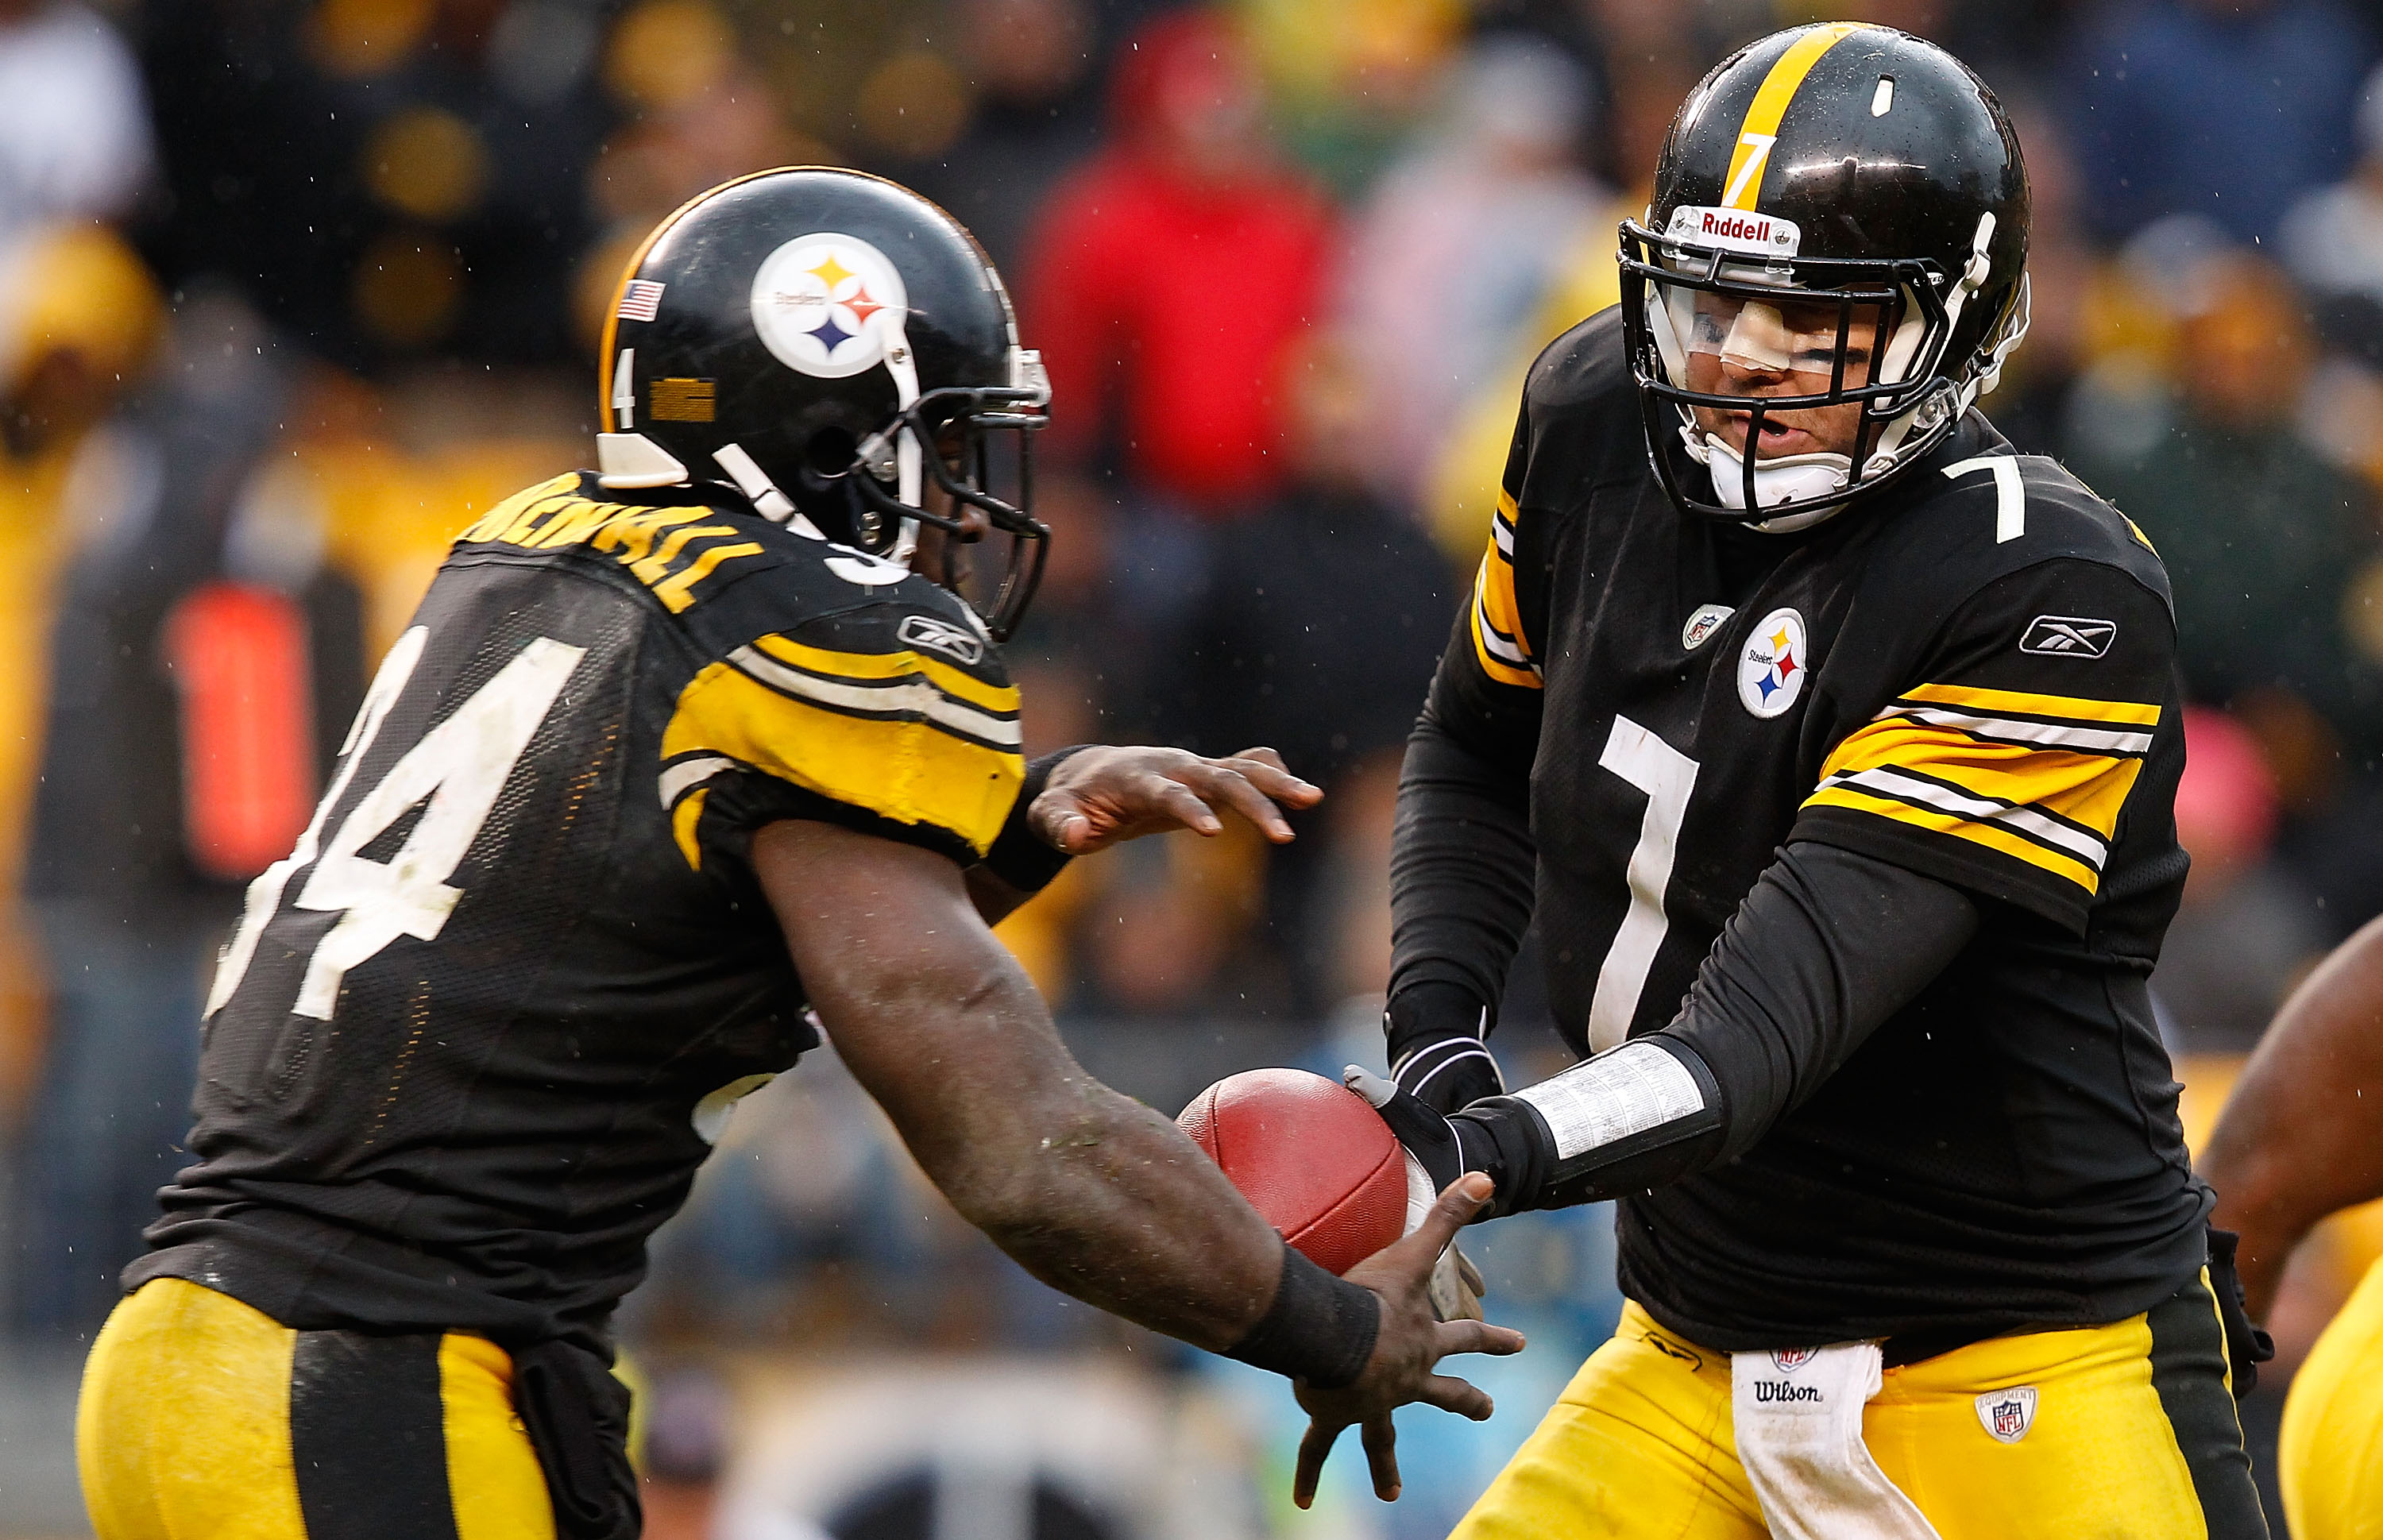 PITTSBURGH - DECEMBER 12:  Ben Roethlisberger #7 of the Pittsburgh Steelers hands the ball off to teammate Rashard Mendenhall #34 during the game against the Cincinnati Bengals on December 12, 2010 at Heinz Field in Pittsburgh, Pennsylvania.  (Photo by Ja